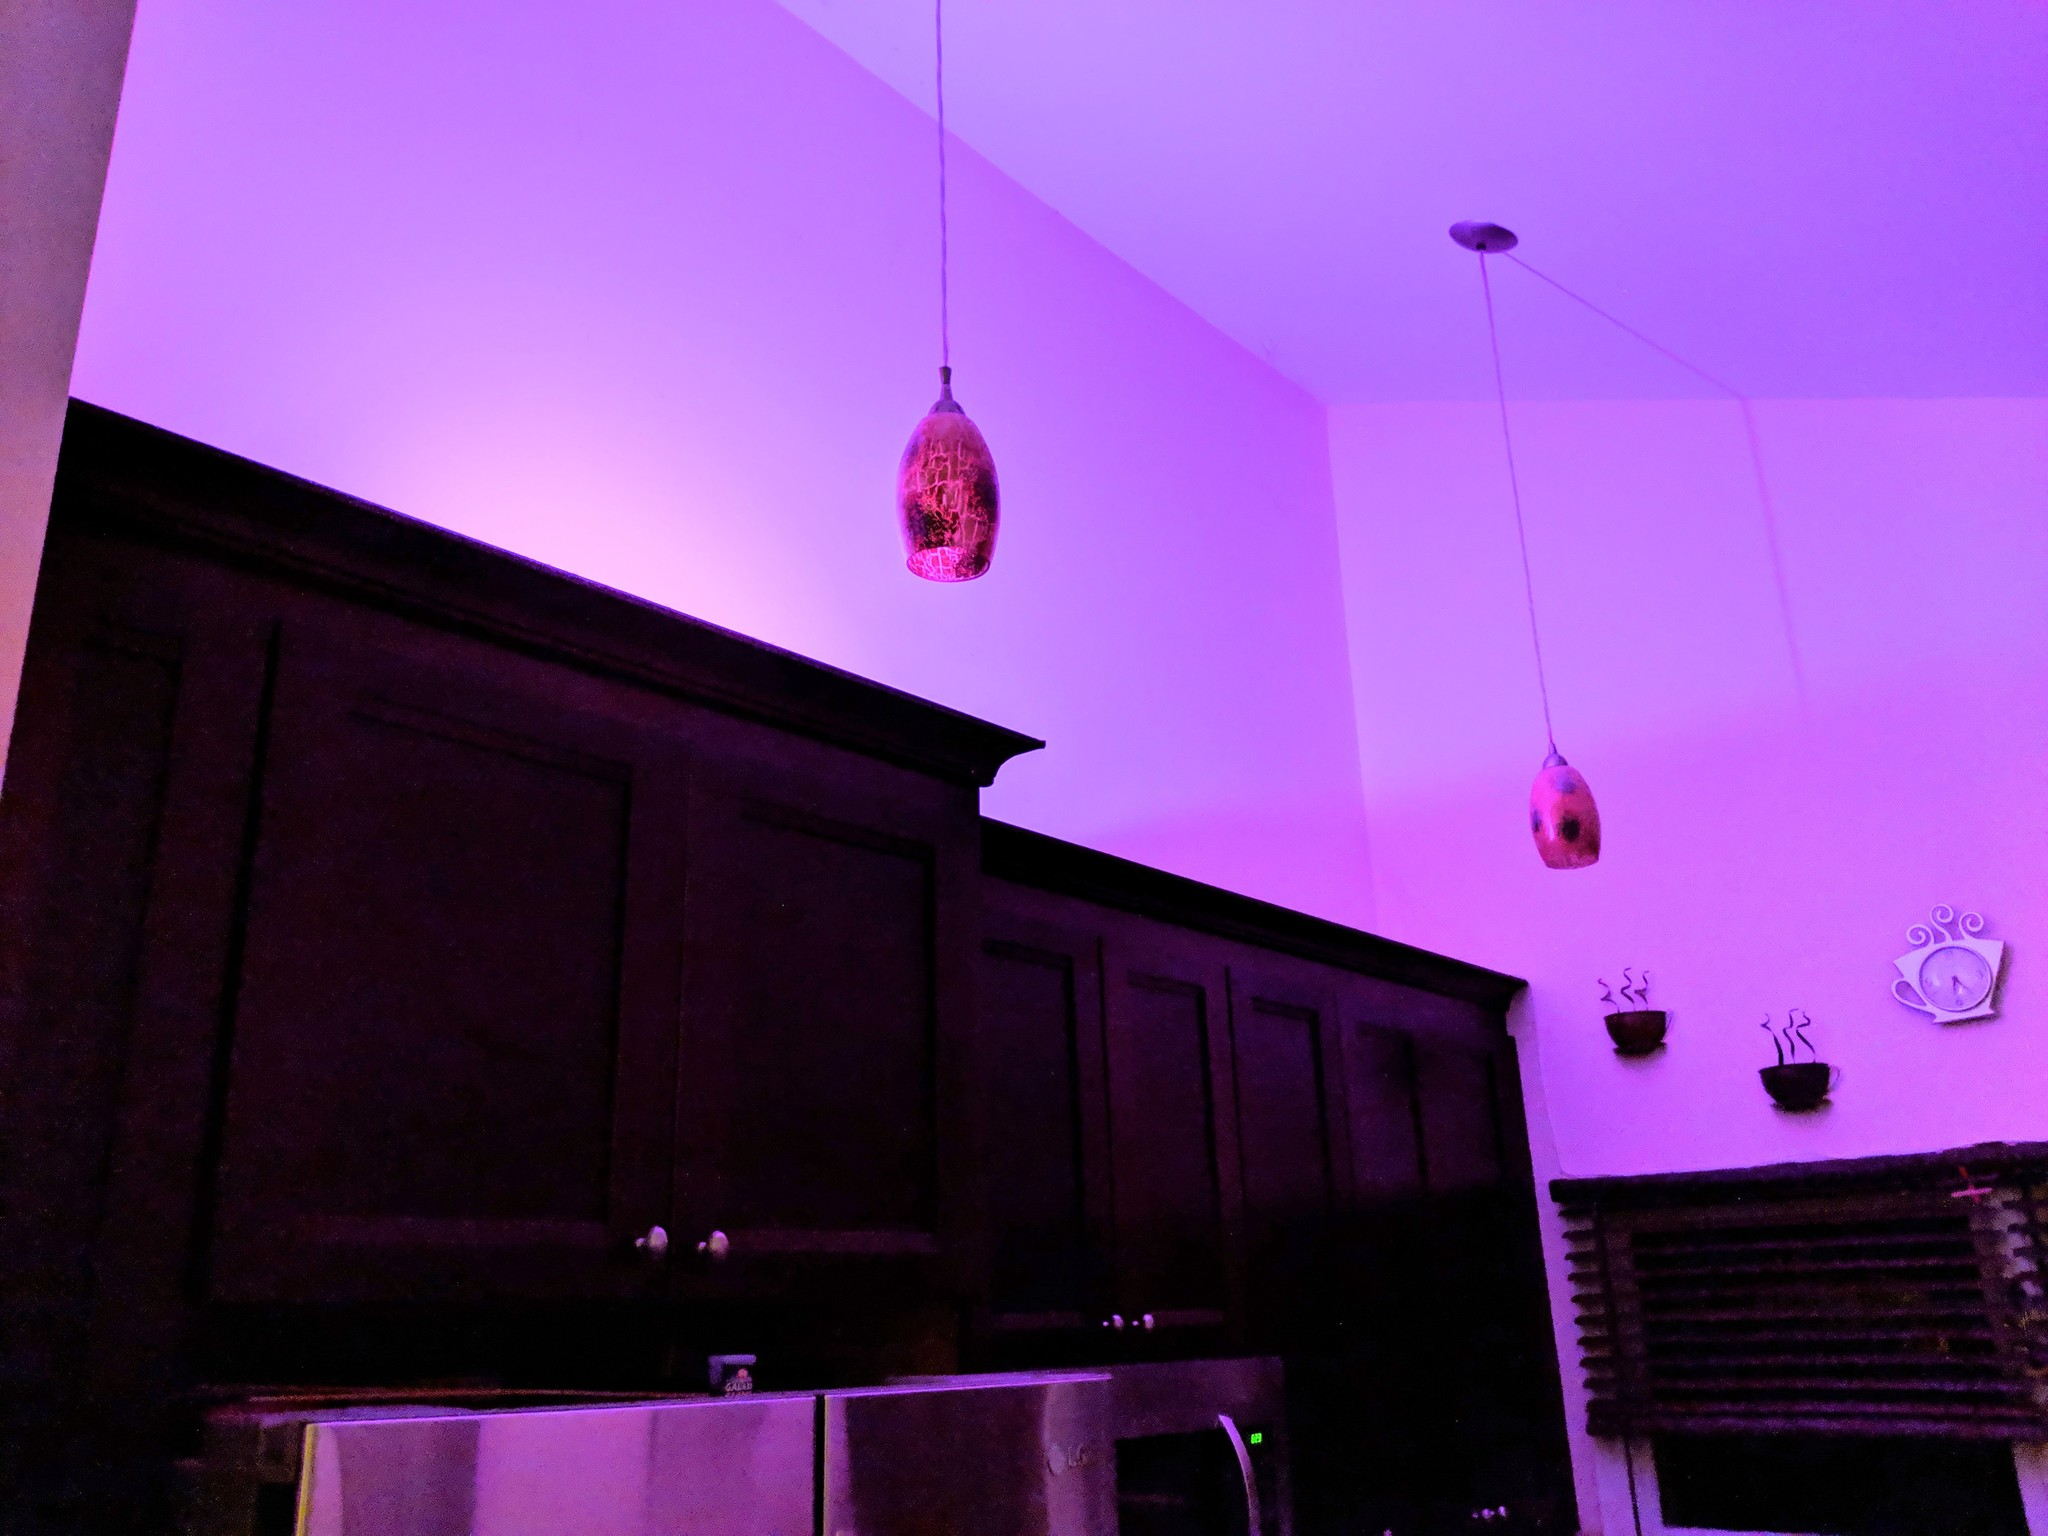 Philips Hue Examples Philips Hue Go Vs Philips Hue Bloom Which Should You Buy